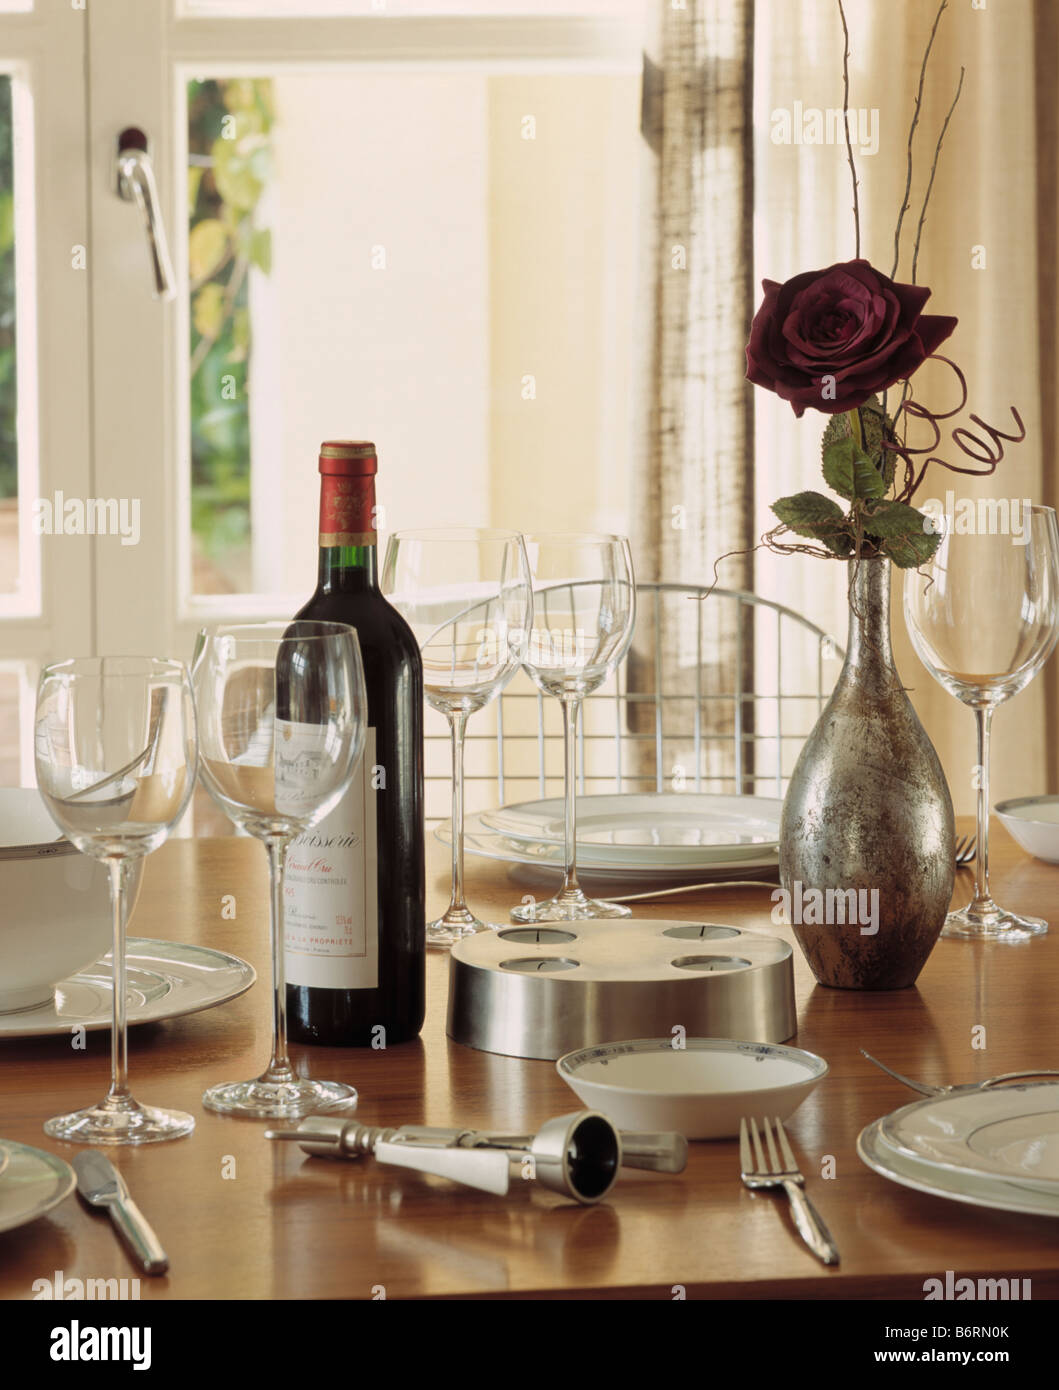 dining place settings. Close-up Of Wine Bottle And Glasses With Place Setting On Dining Table Red Rose In Metal Vase Settings